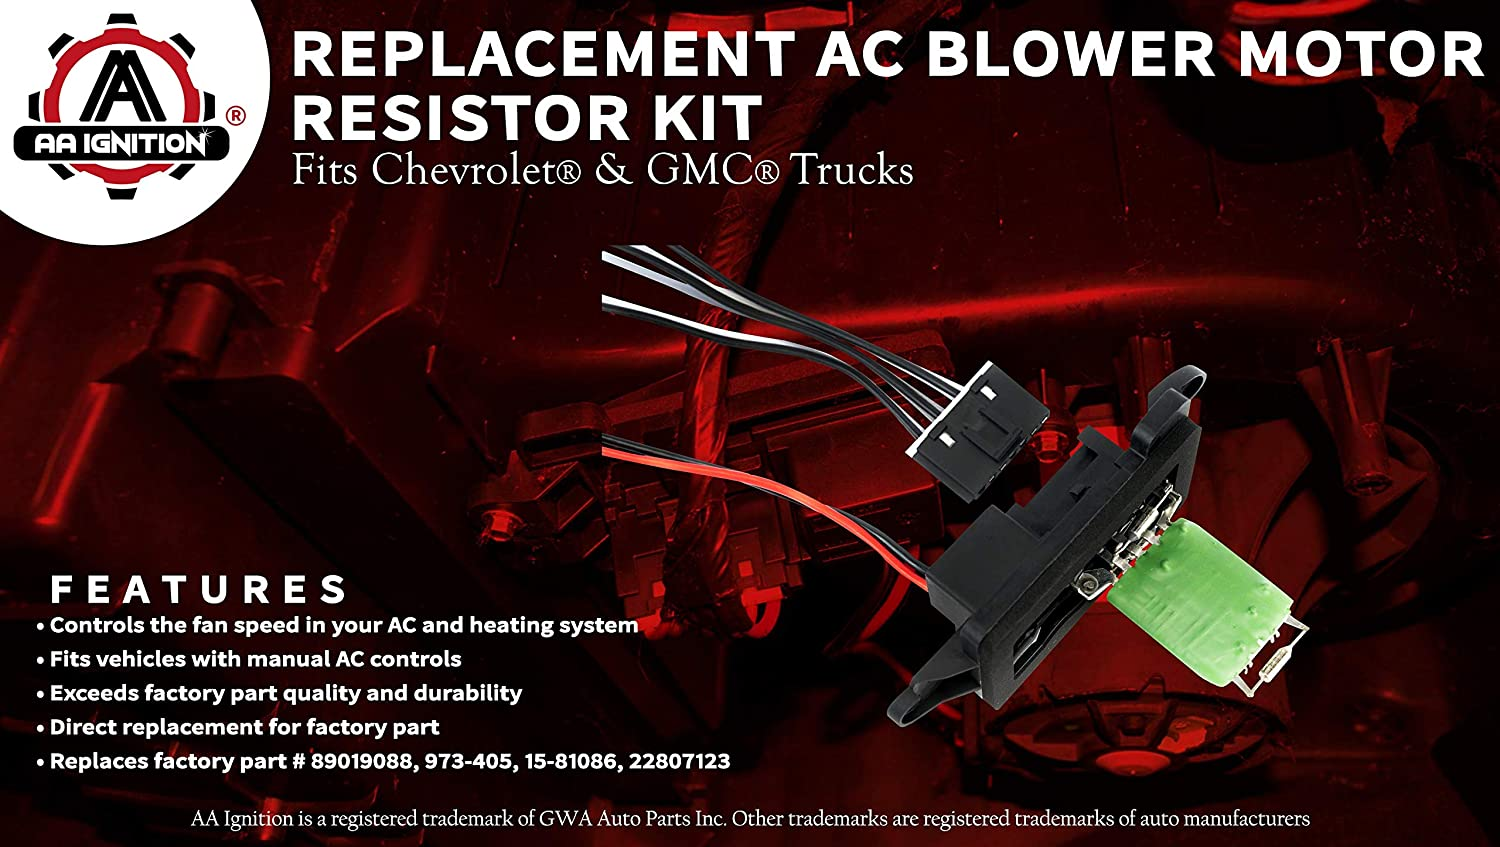 Ac Blower Motor Resistor Kit With Harness Replaces Chevy Truck Heater Wiring 89019088 973 405 15 81086 22807123 Fits Silverado Tahoe Suburban Avalanche